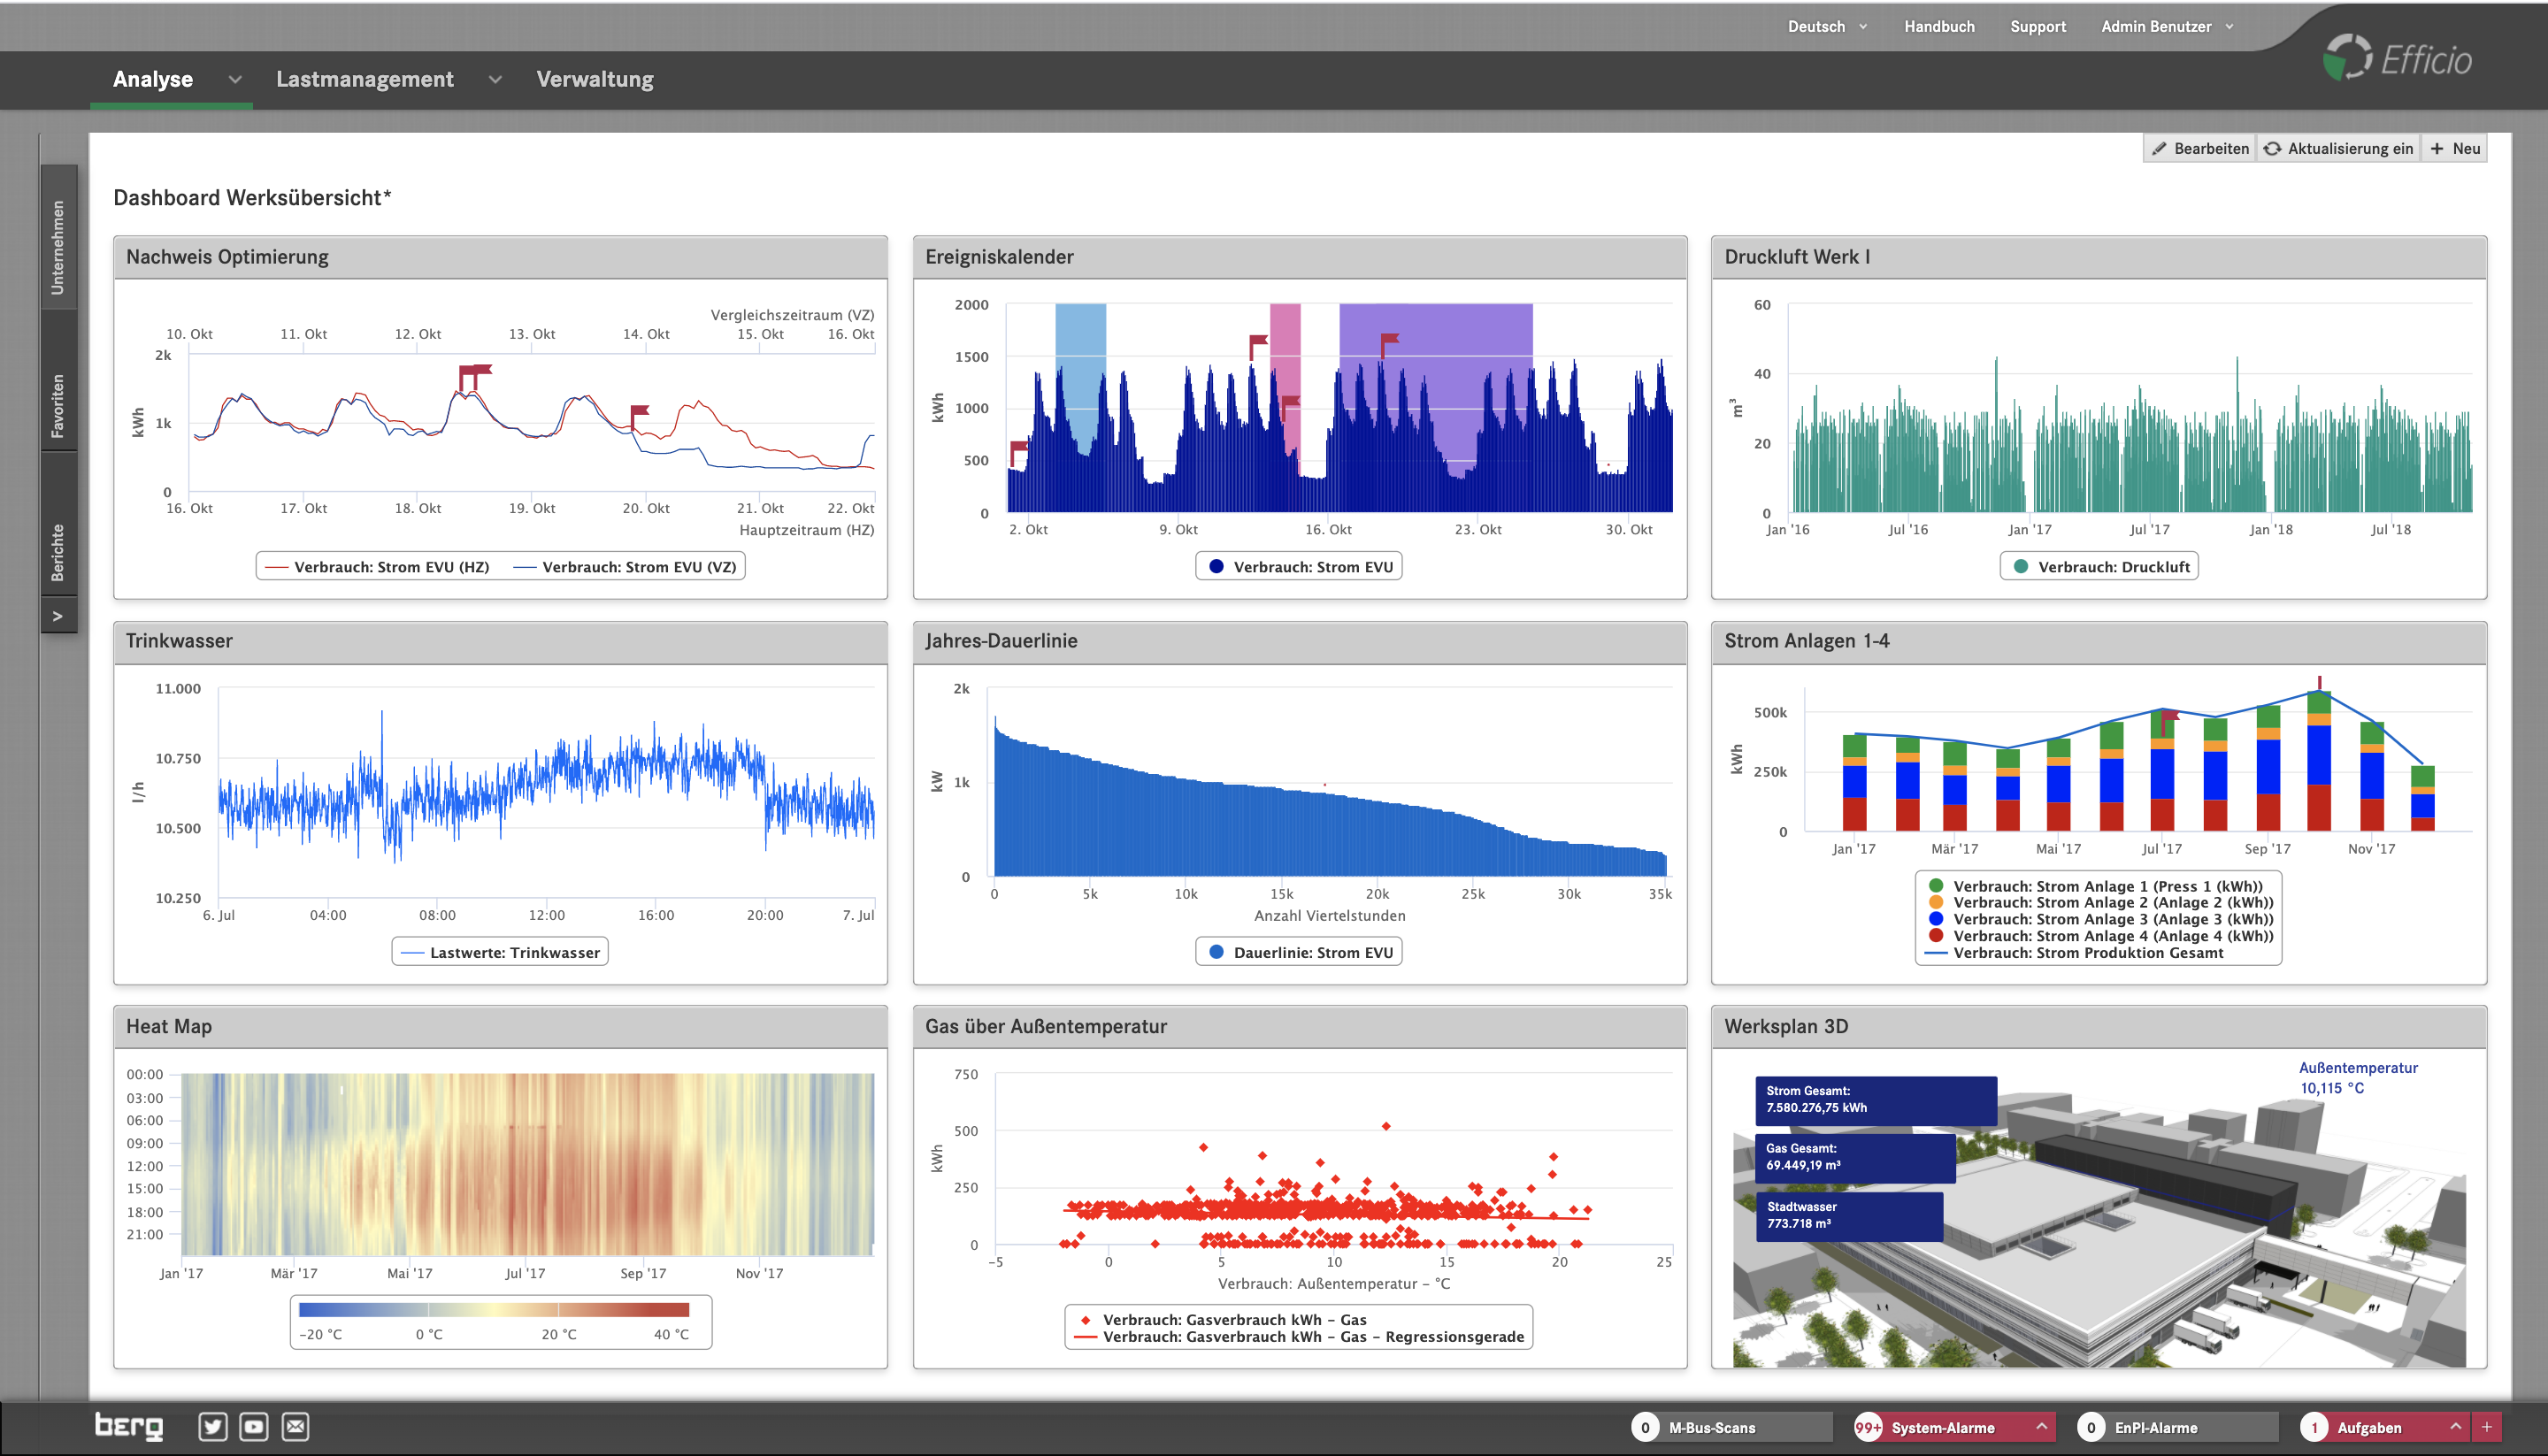 Dashboard der Efficio Energiemanagement Software von Berg